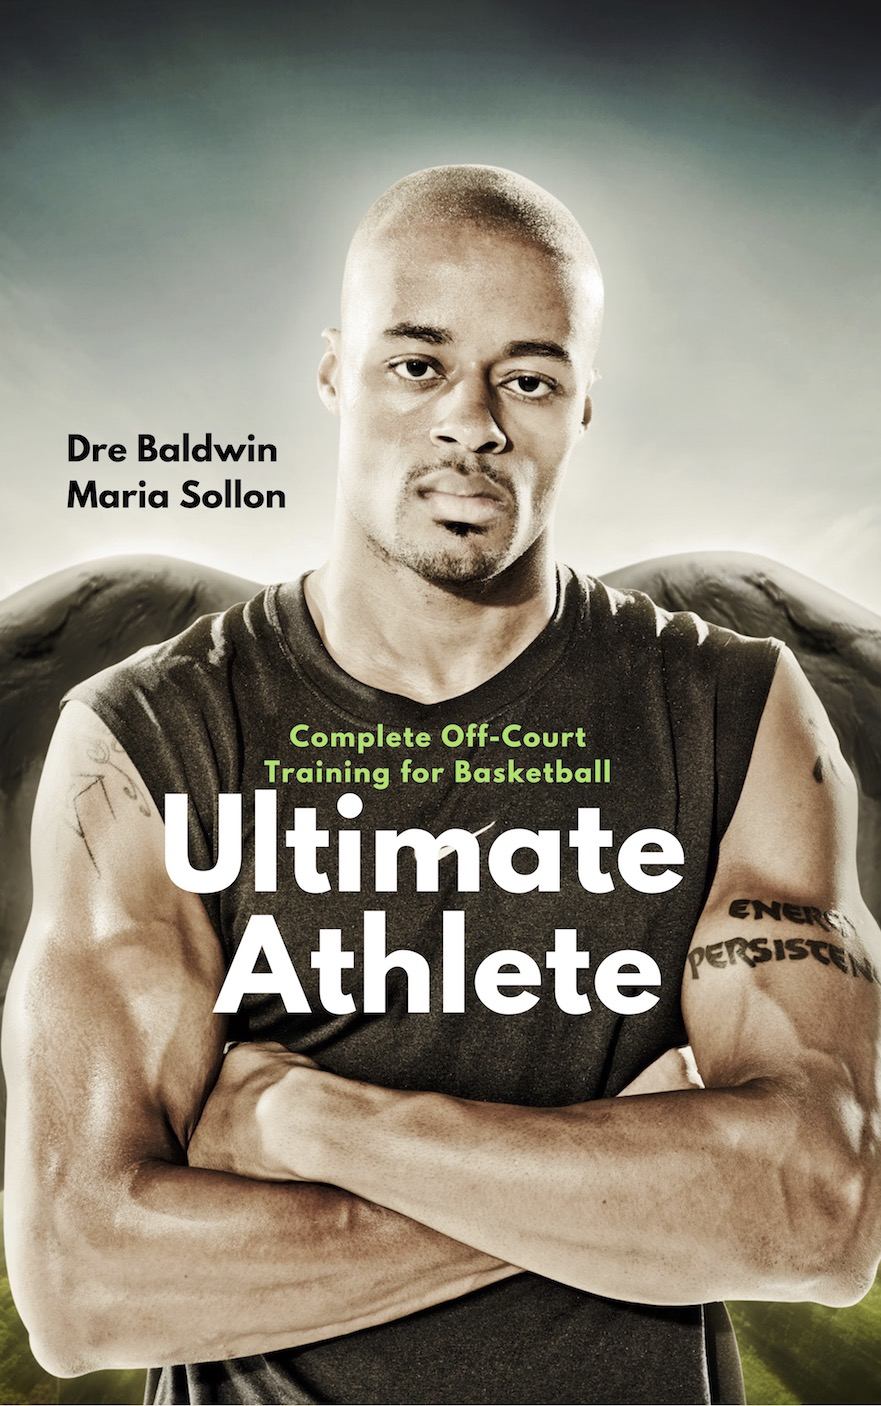 Ultimate Athlete by Dre Baldwin & Maria Sollon